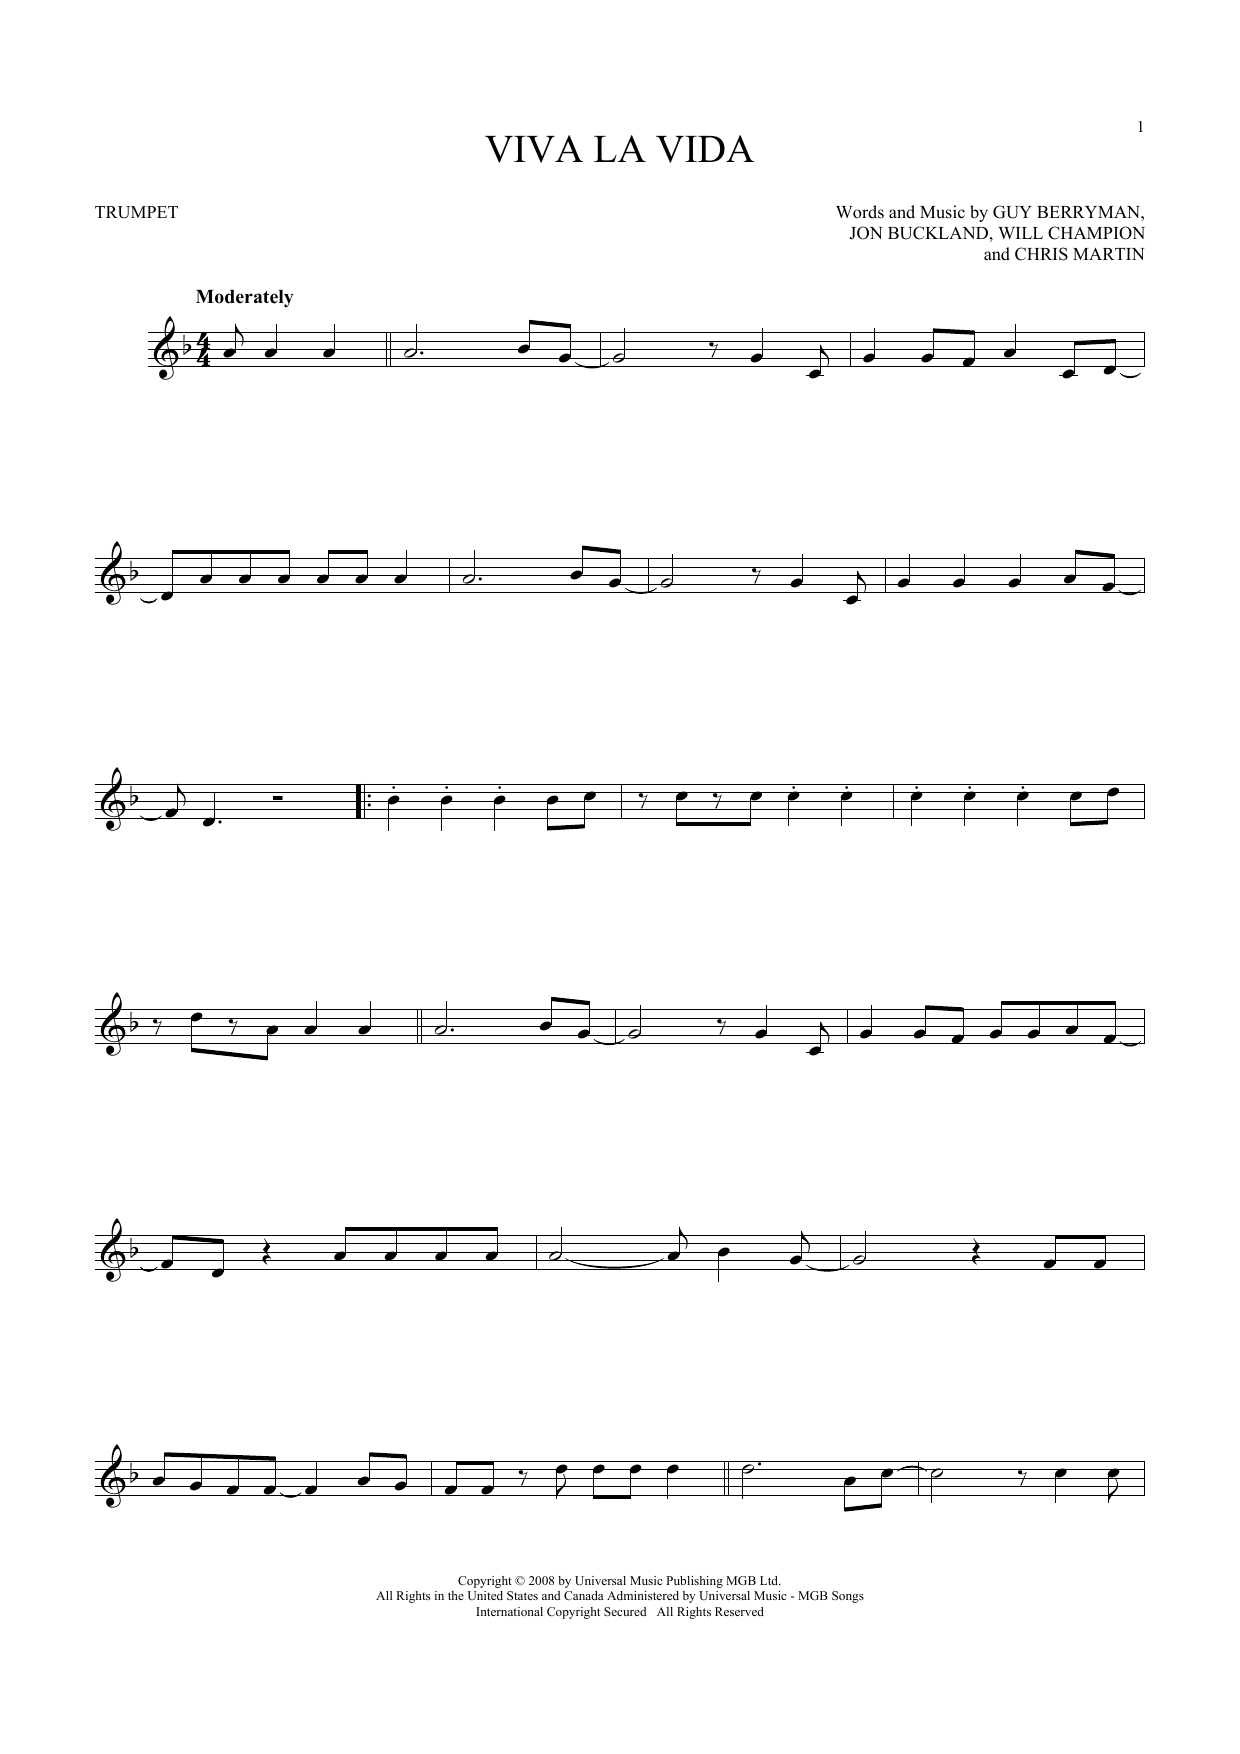 Viva La Vida Chords Coldplay Viva La Vida Sheet Music Notes Chords Download Printable Trumpet Sku 180665